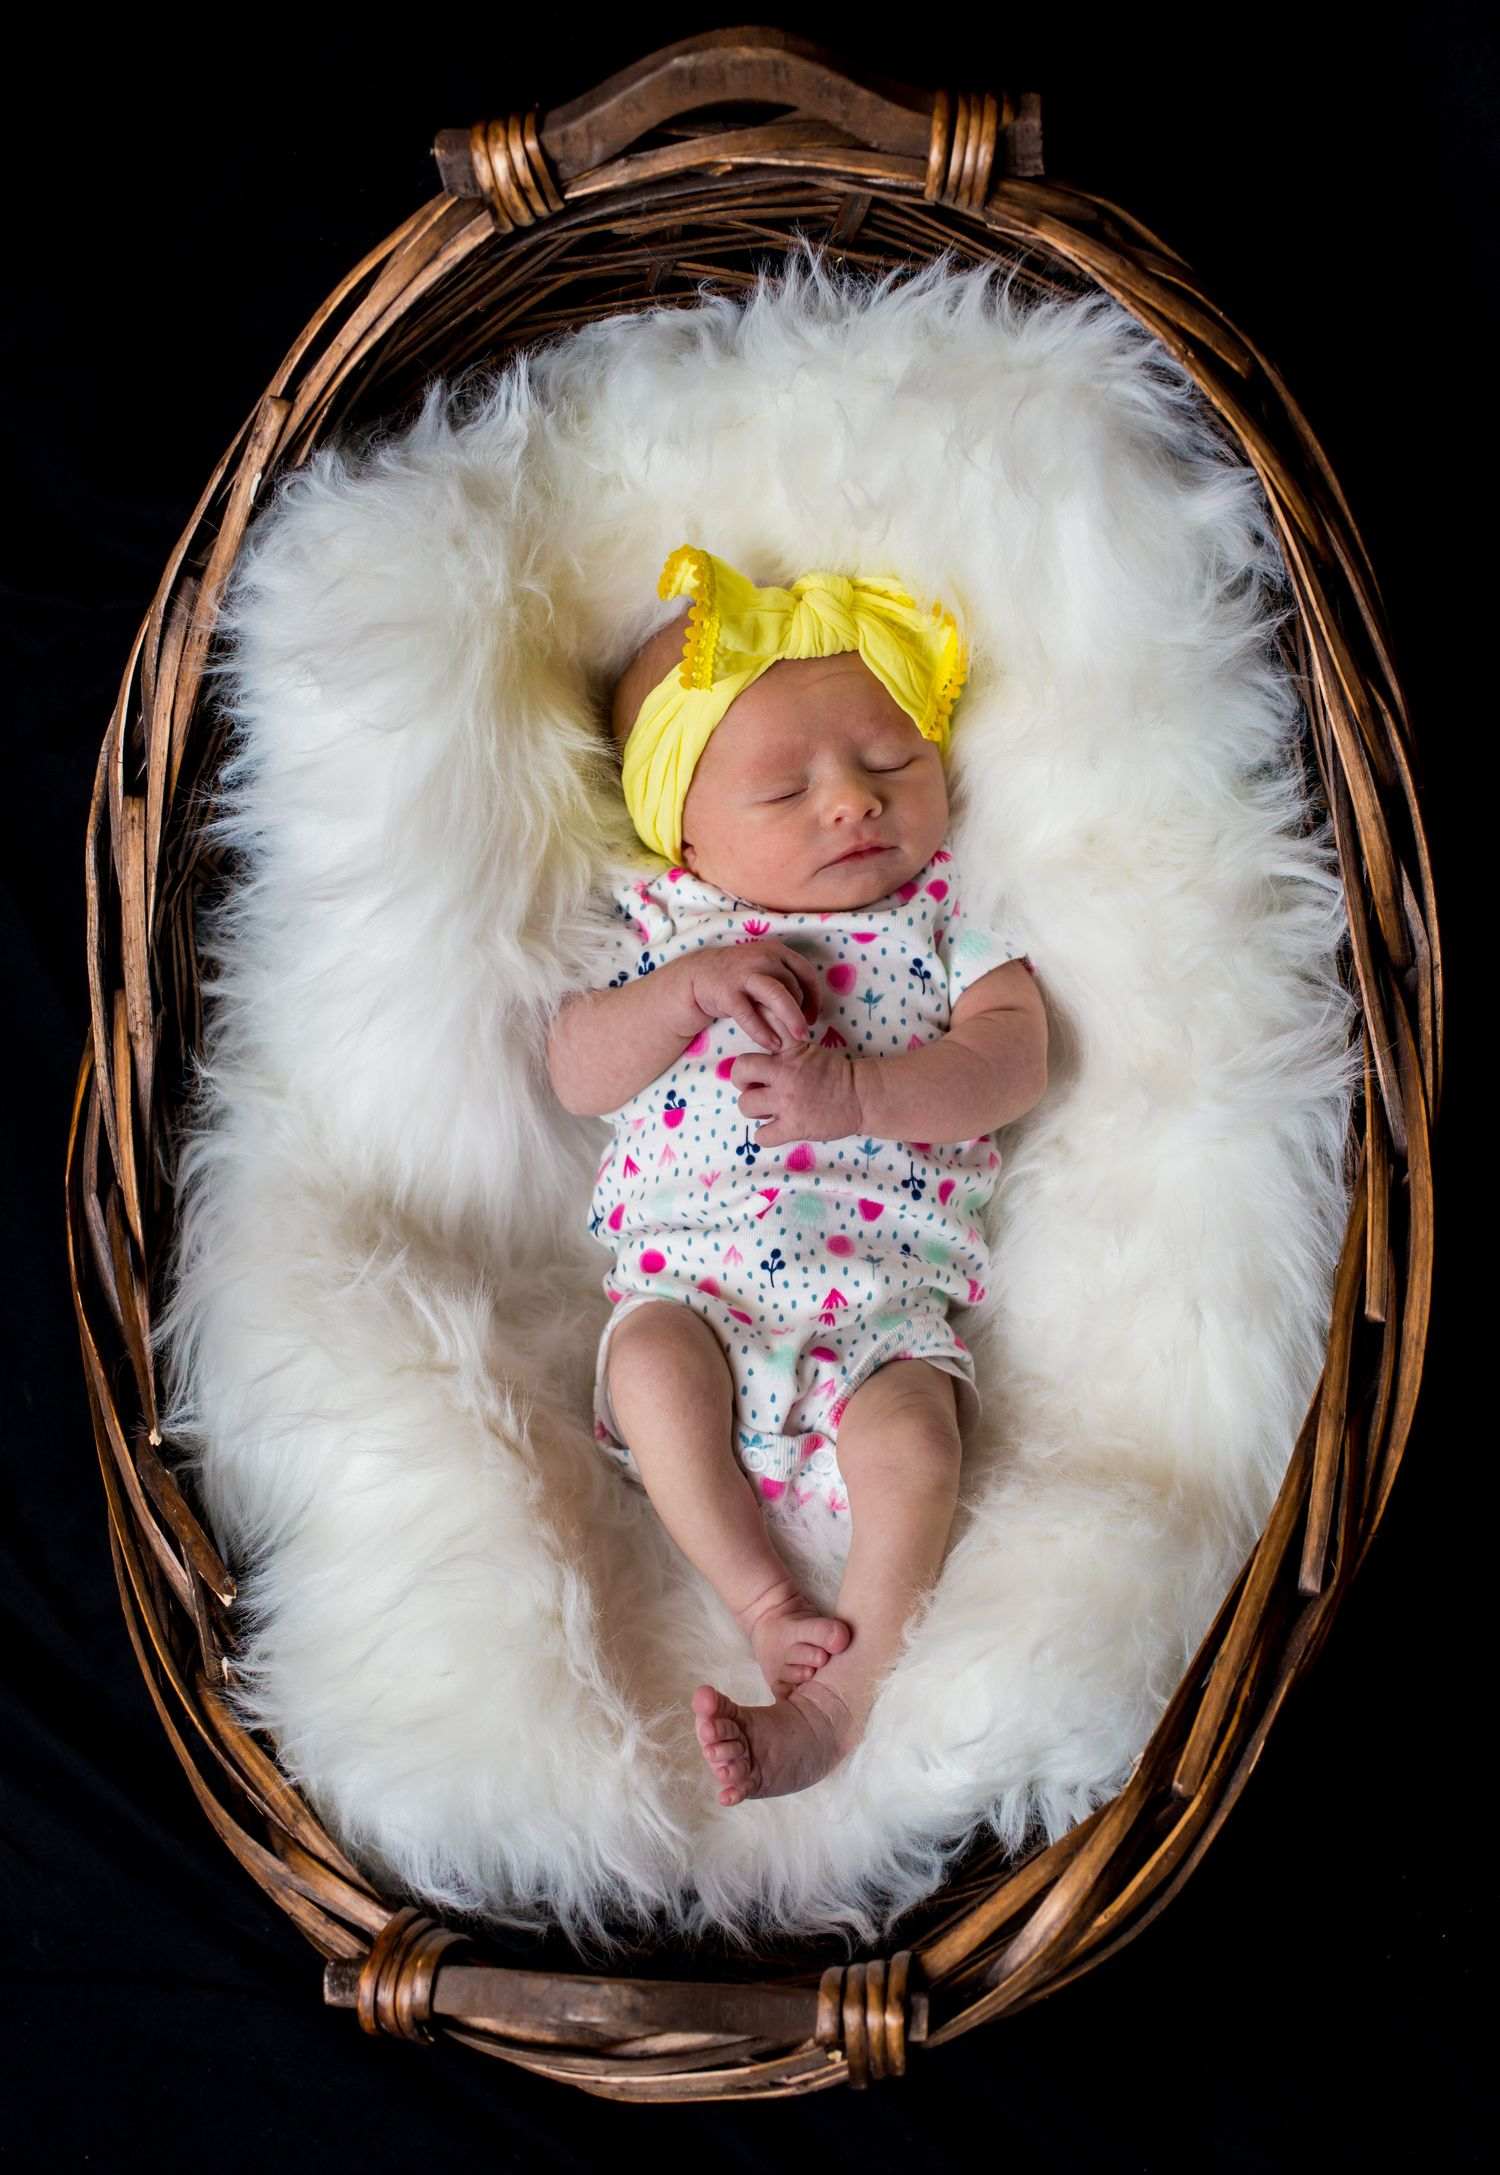 Newborn portrait of a baby in a basket photo by Columbia, SC, wedding photographer Jeff Blake